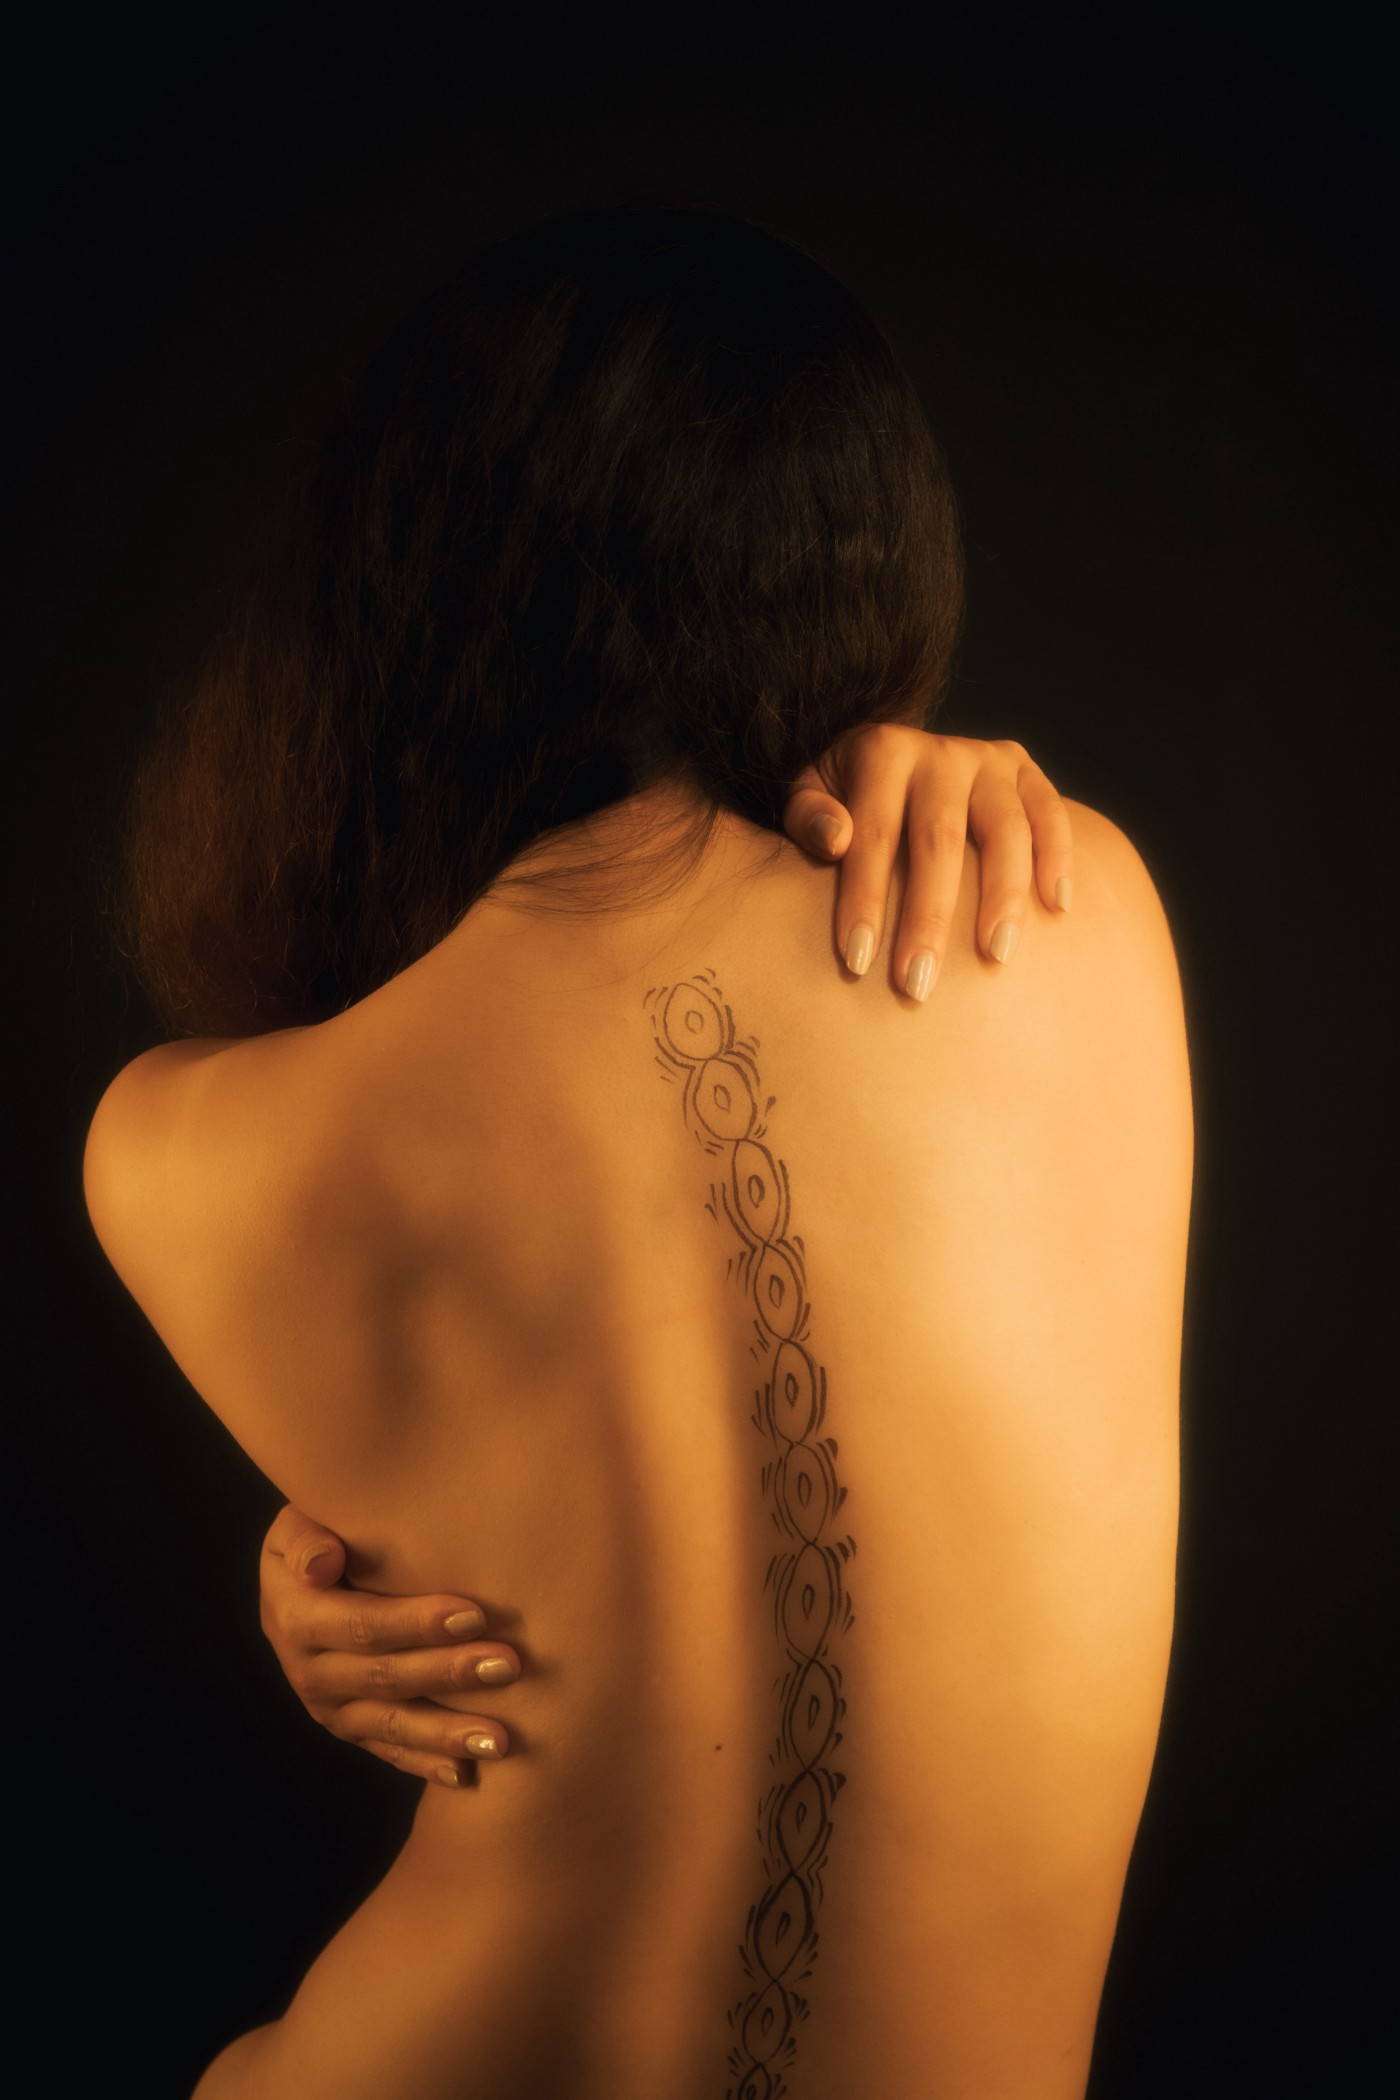 A woman's back and spine